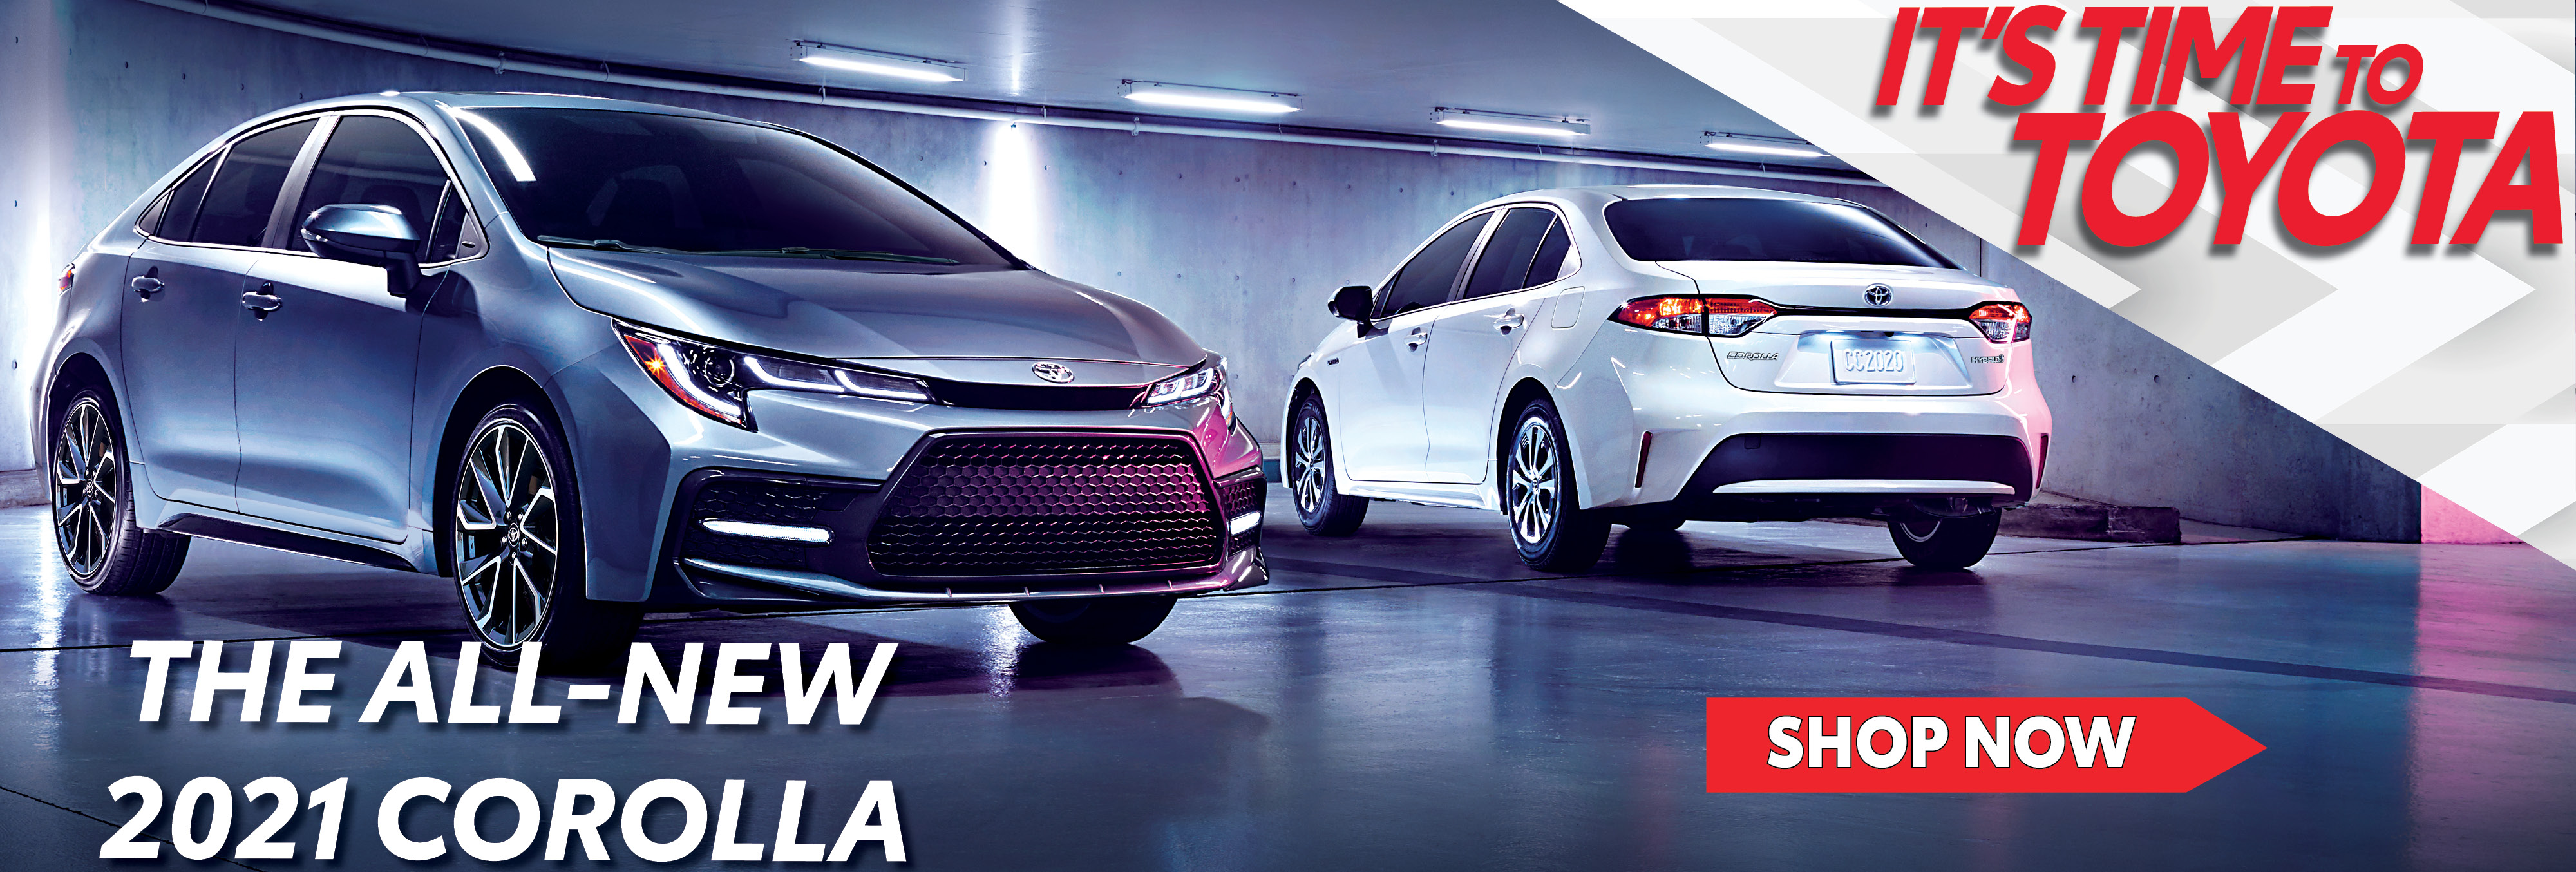 The All New 2021 Corolla - It's Time to Toyota